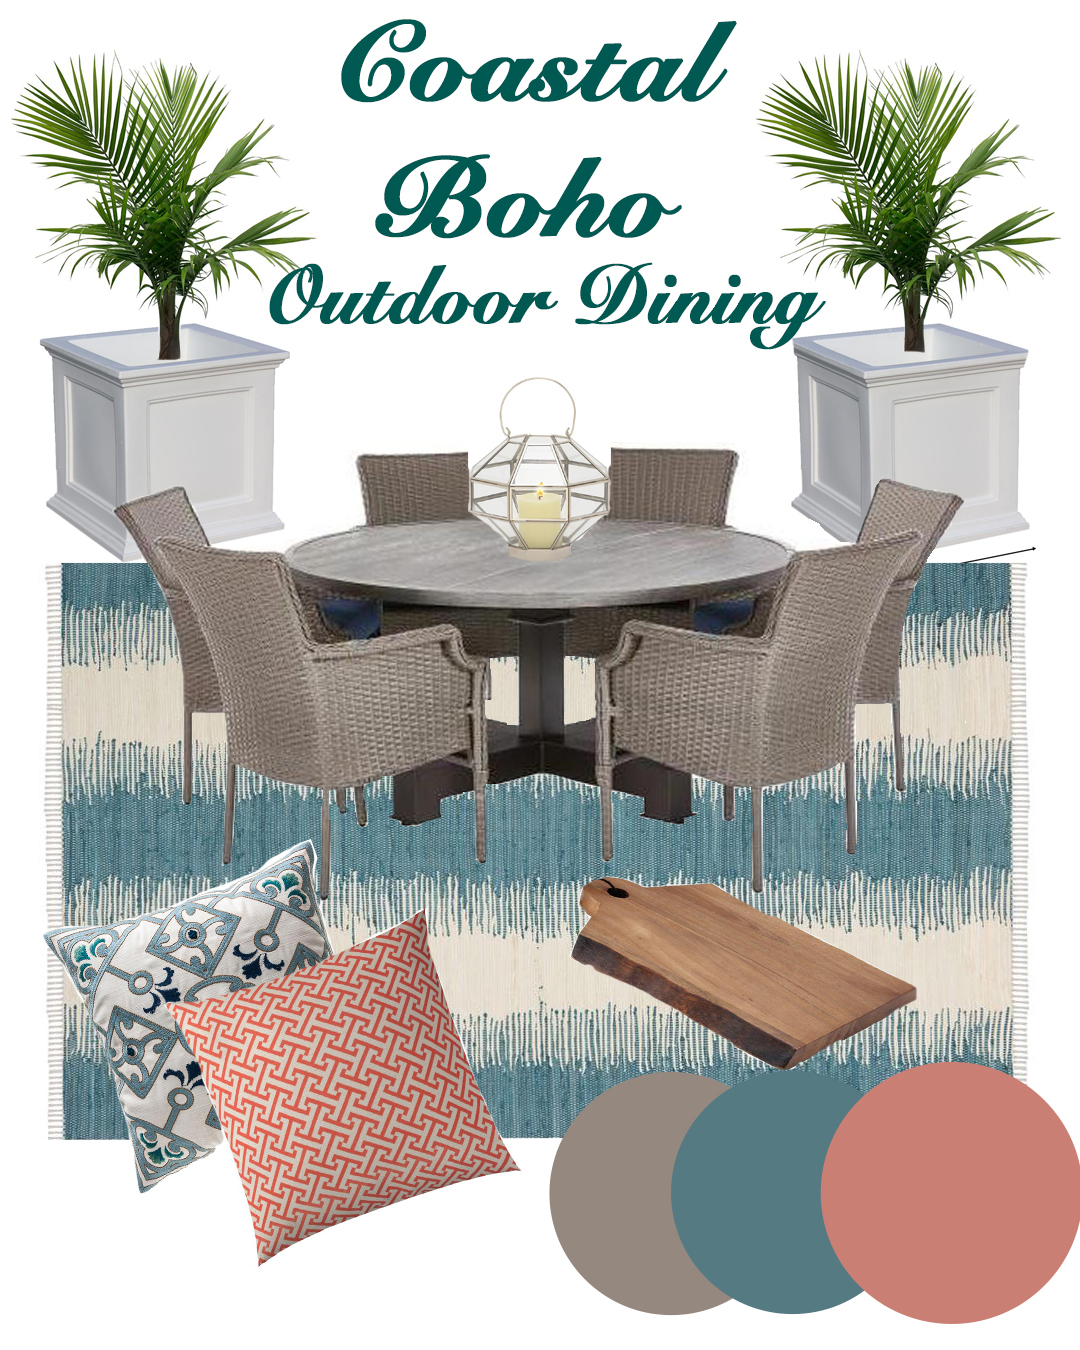 Beautiful Outdoor Living Ideas with The Home Depot…